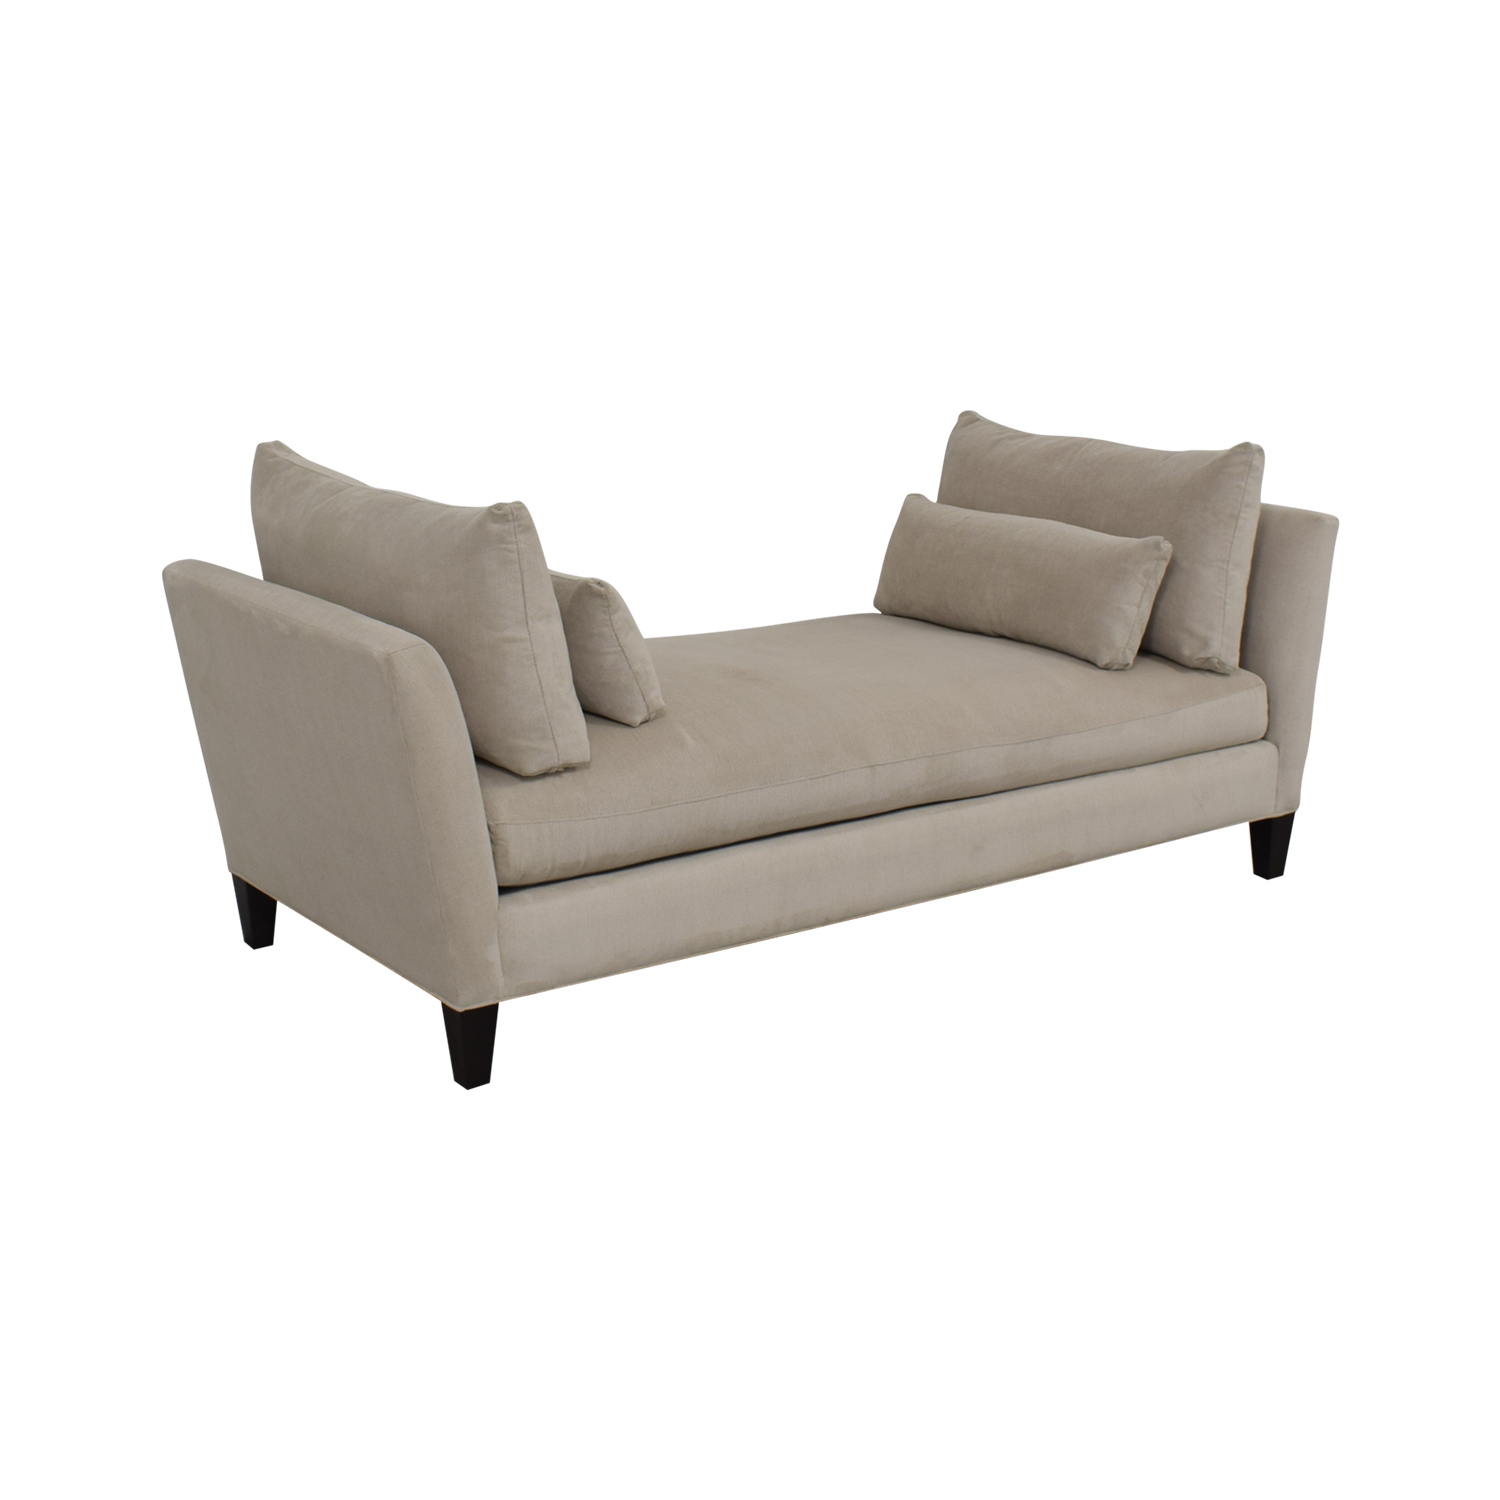 shop Crate & Barrel Marlowe Daybed Crate & Barrel